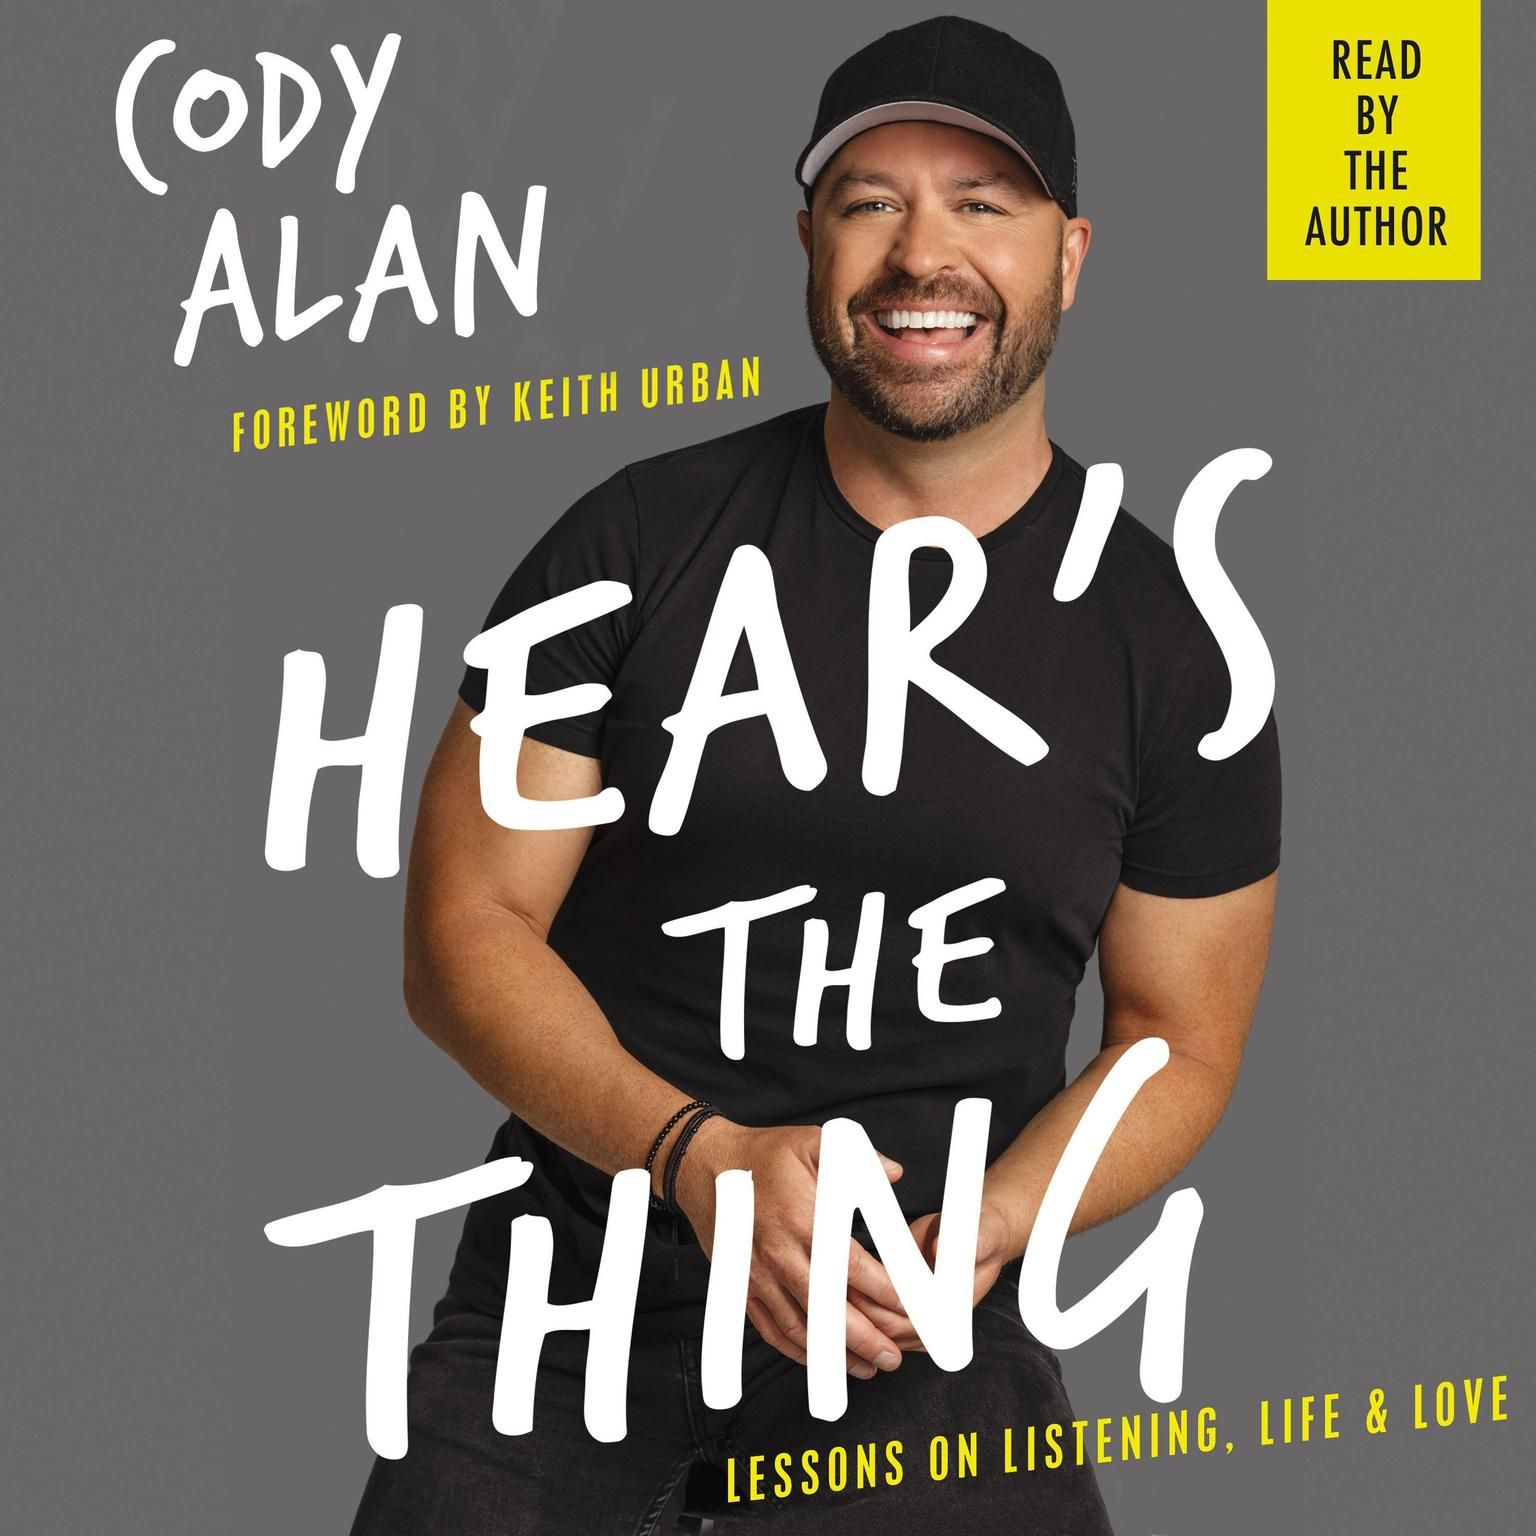 Hears the Thing: Lessons on Listening, Life, and Love Audiobook, by Cody Alan